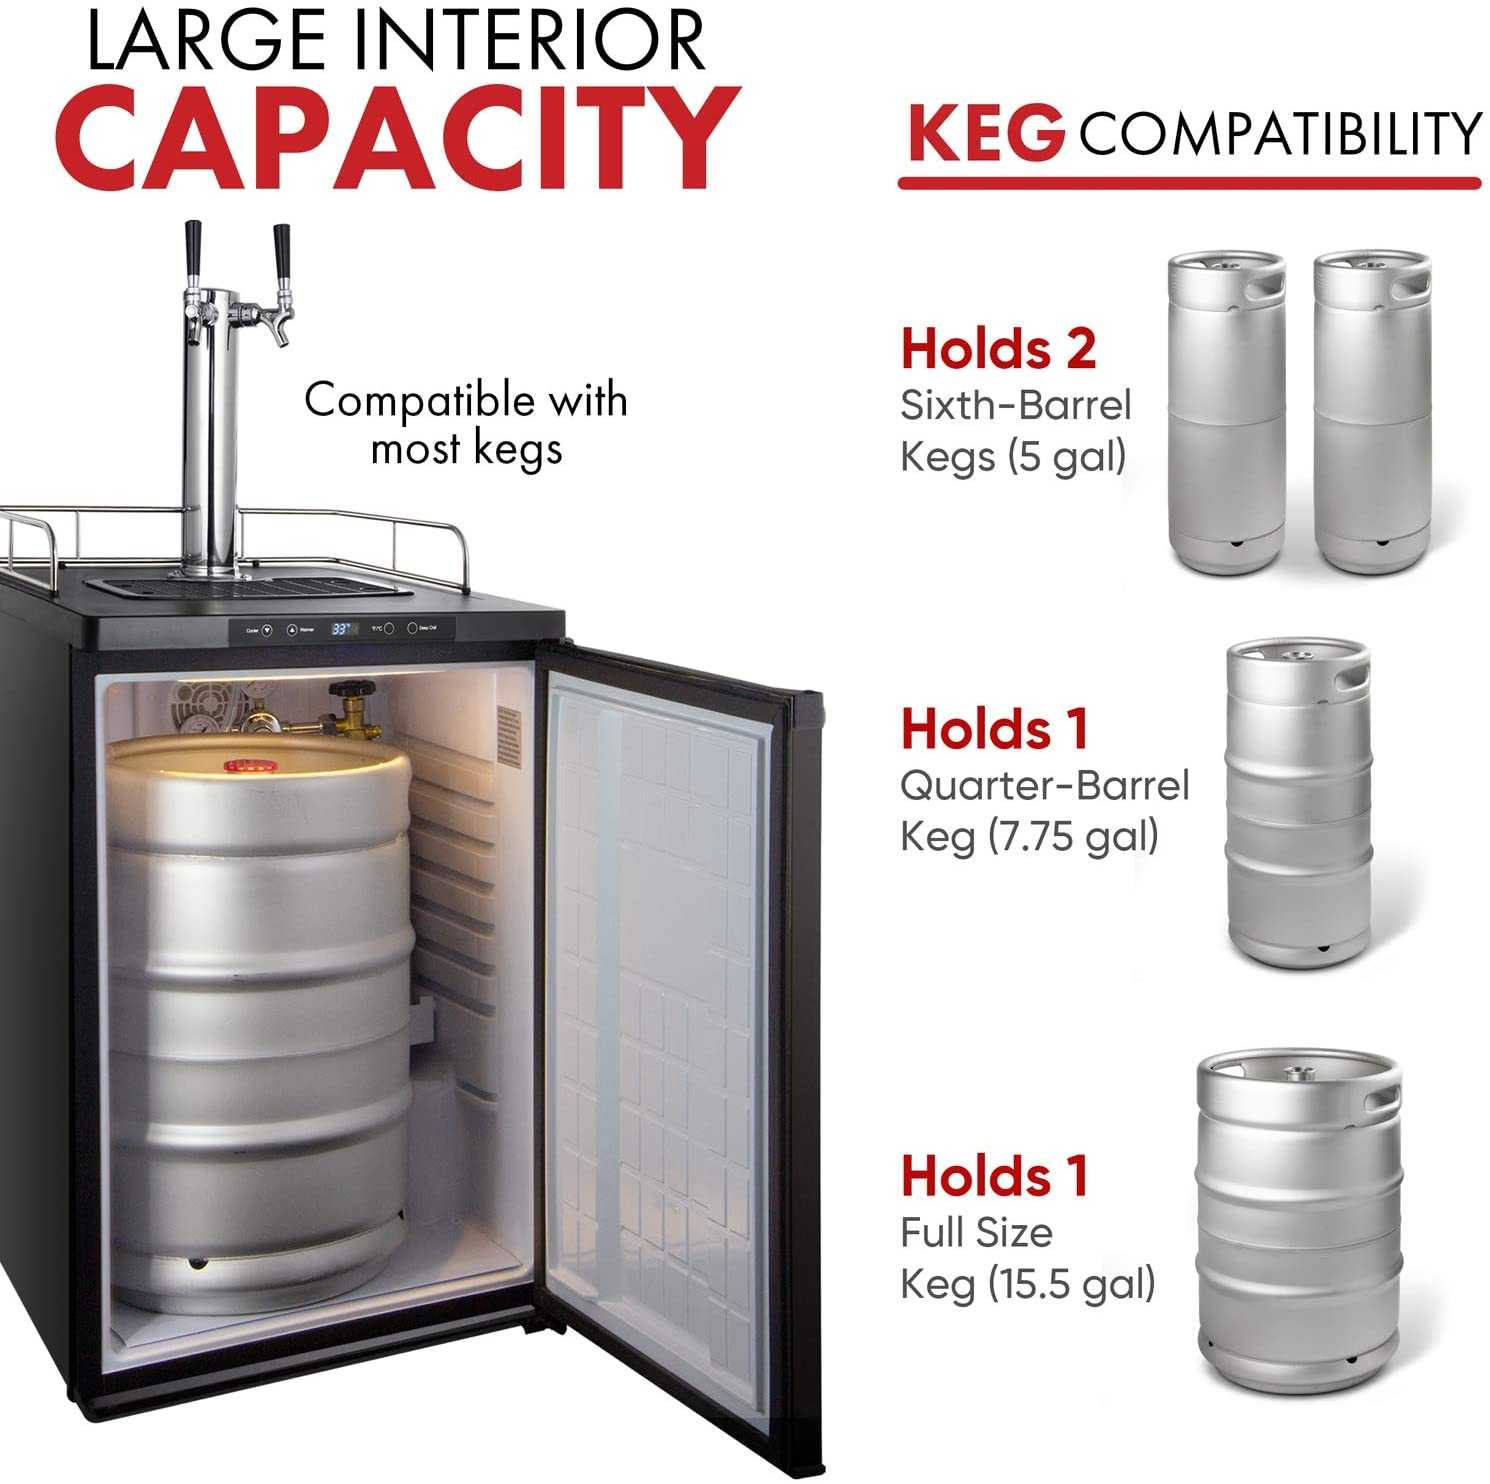 Great beer gift for your man - a dual tap kegarator!